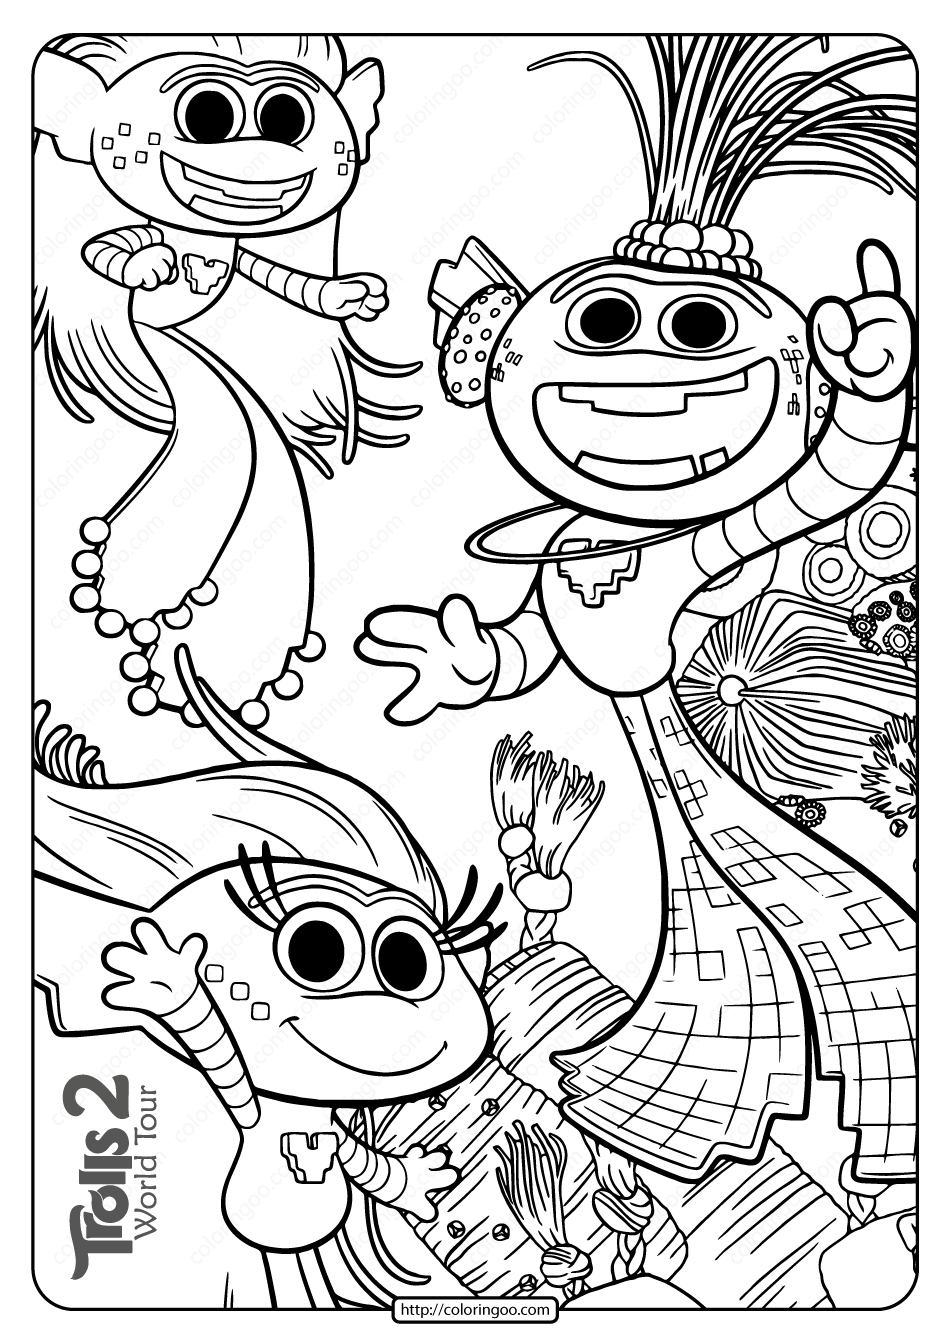 colouring pages to print free free printable trolls 2 king trollex coloring page free to pages print colouring